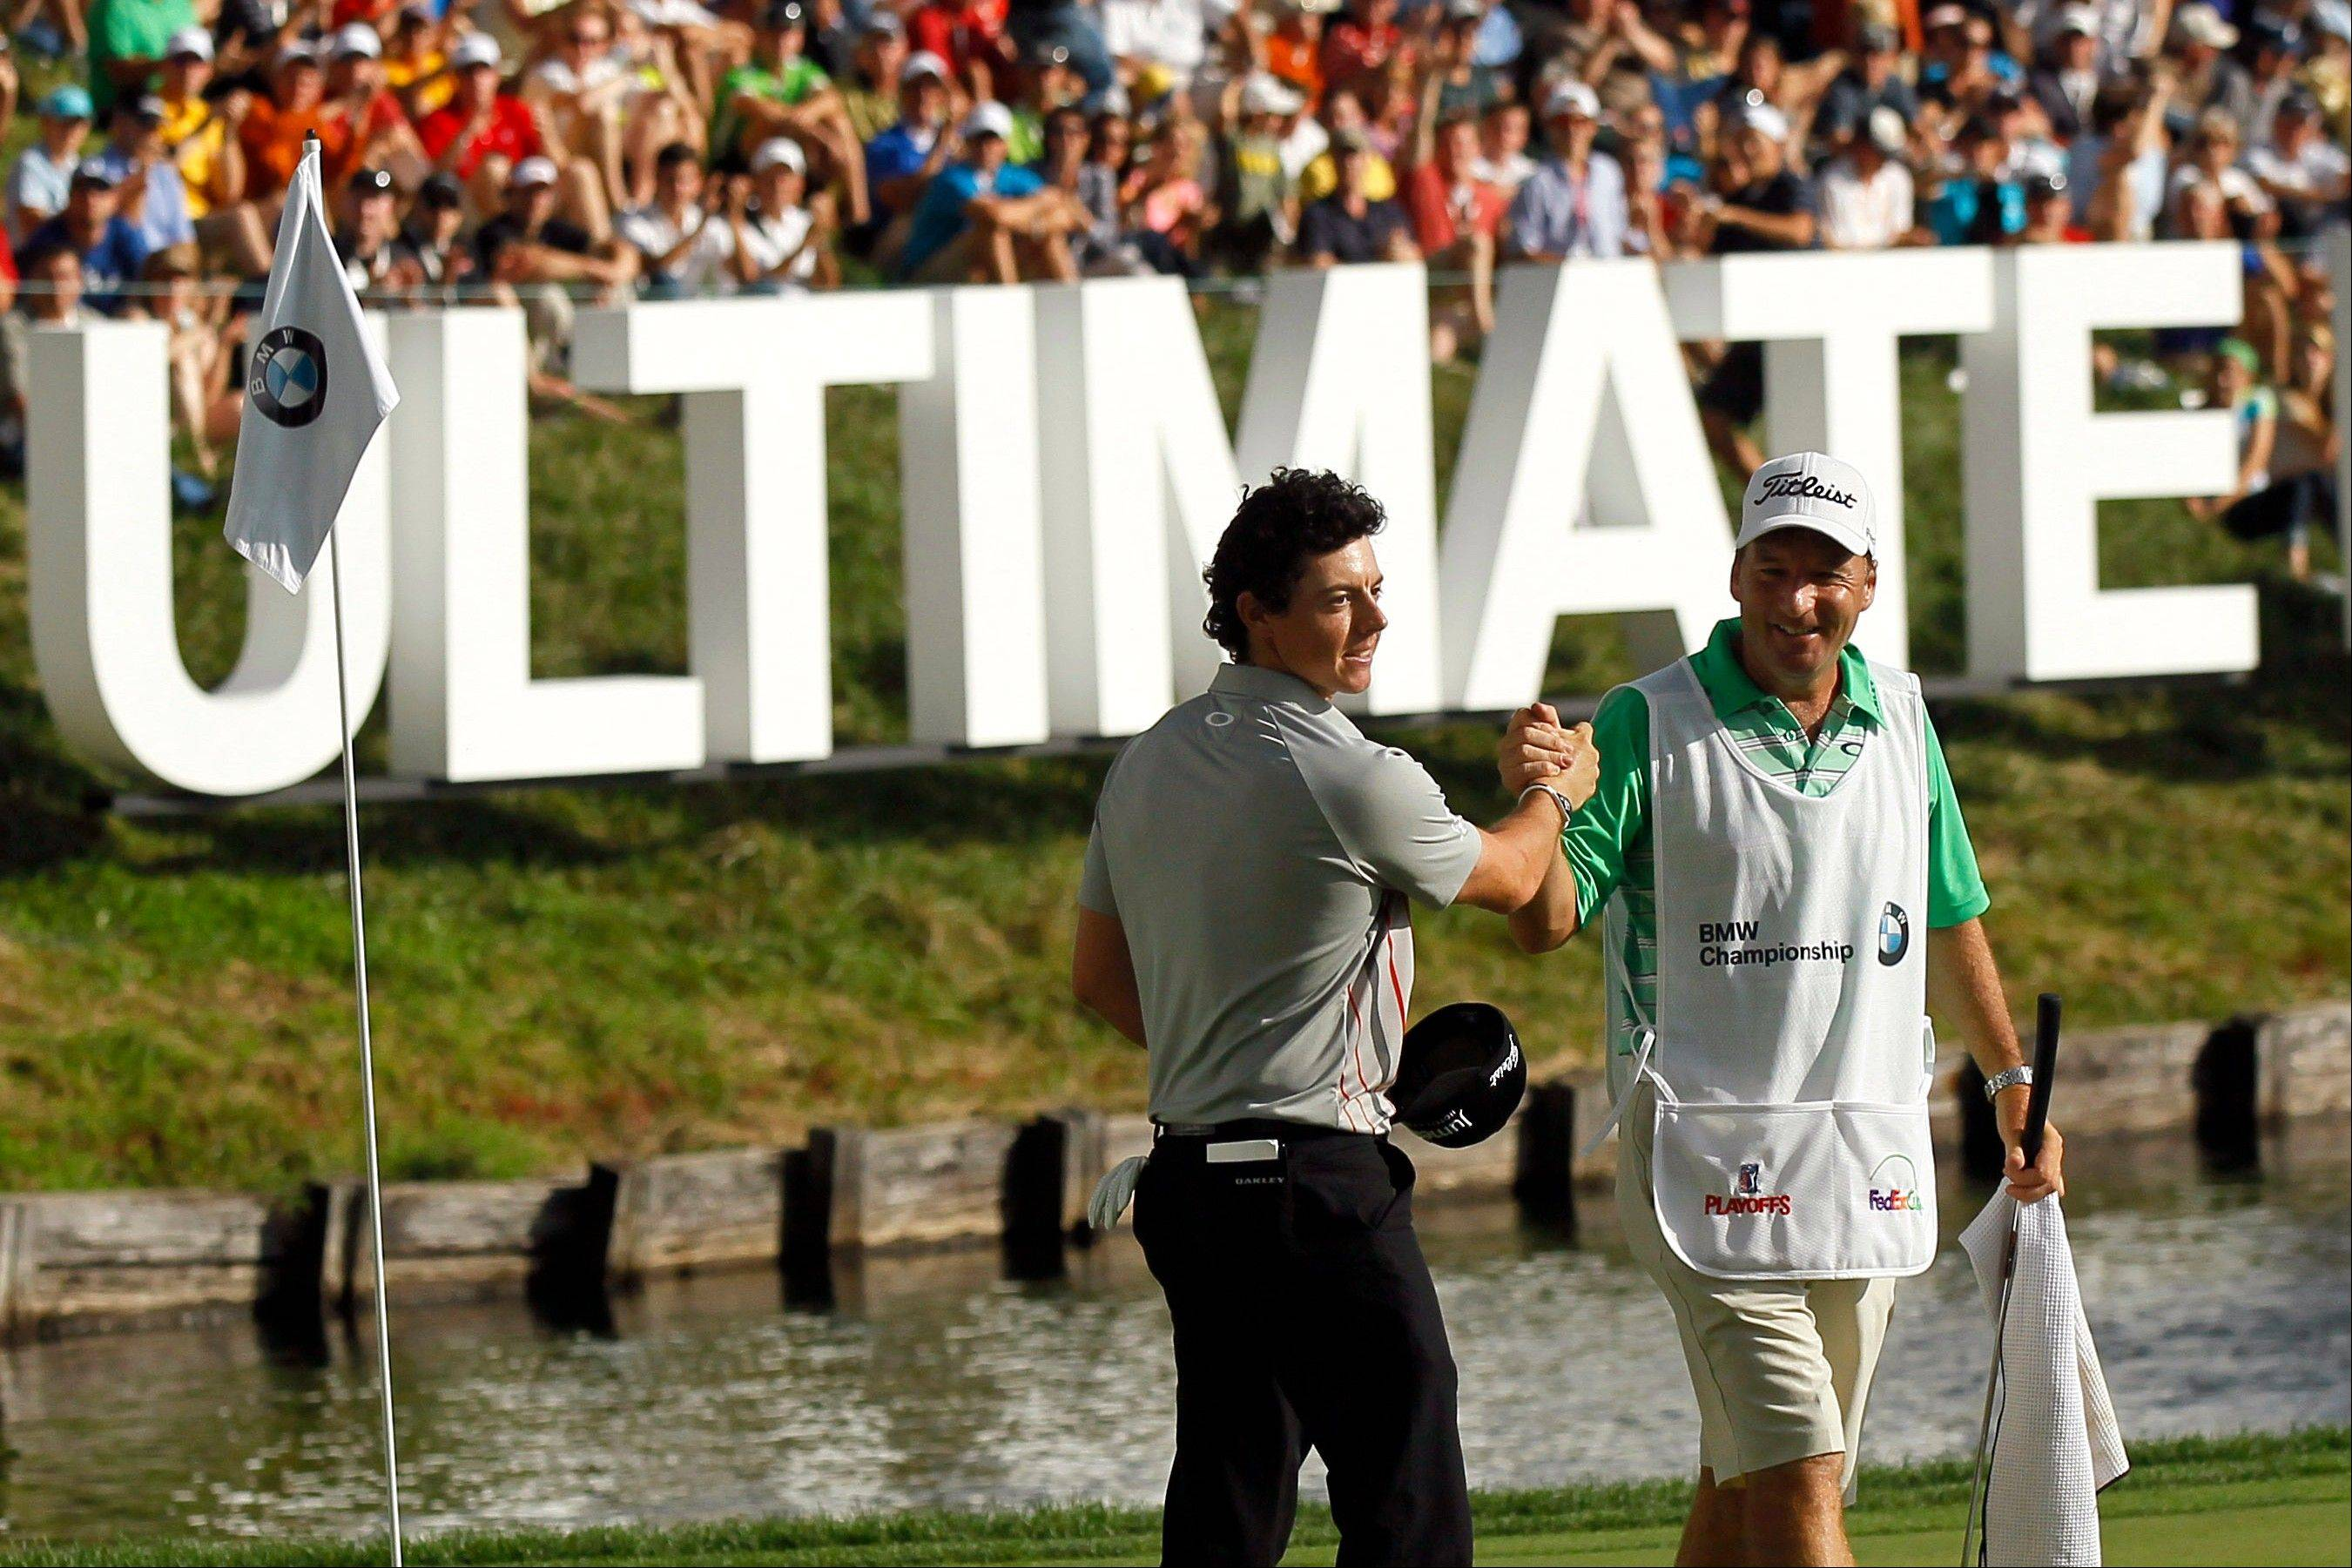 Rory McIlroy, left, of Northern Ireland, celebrates with caddie J.P. Fitzgerald after finishing the BMW Championship PGA golf tournament at Crooked Stick Golf Club in Carmel, Ind., Sunday, Sept. 9, 2012. McIlroy won the event. (AP Photo/Charles Rex Arbogast)